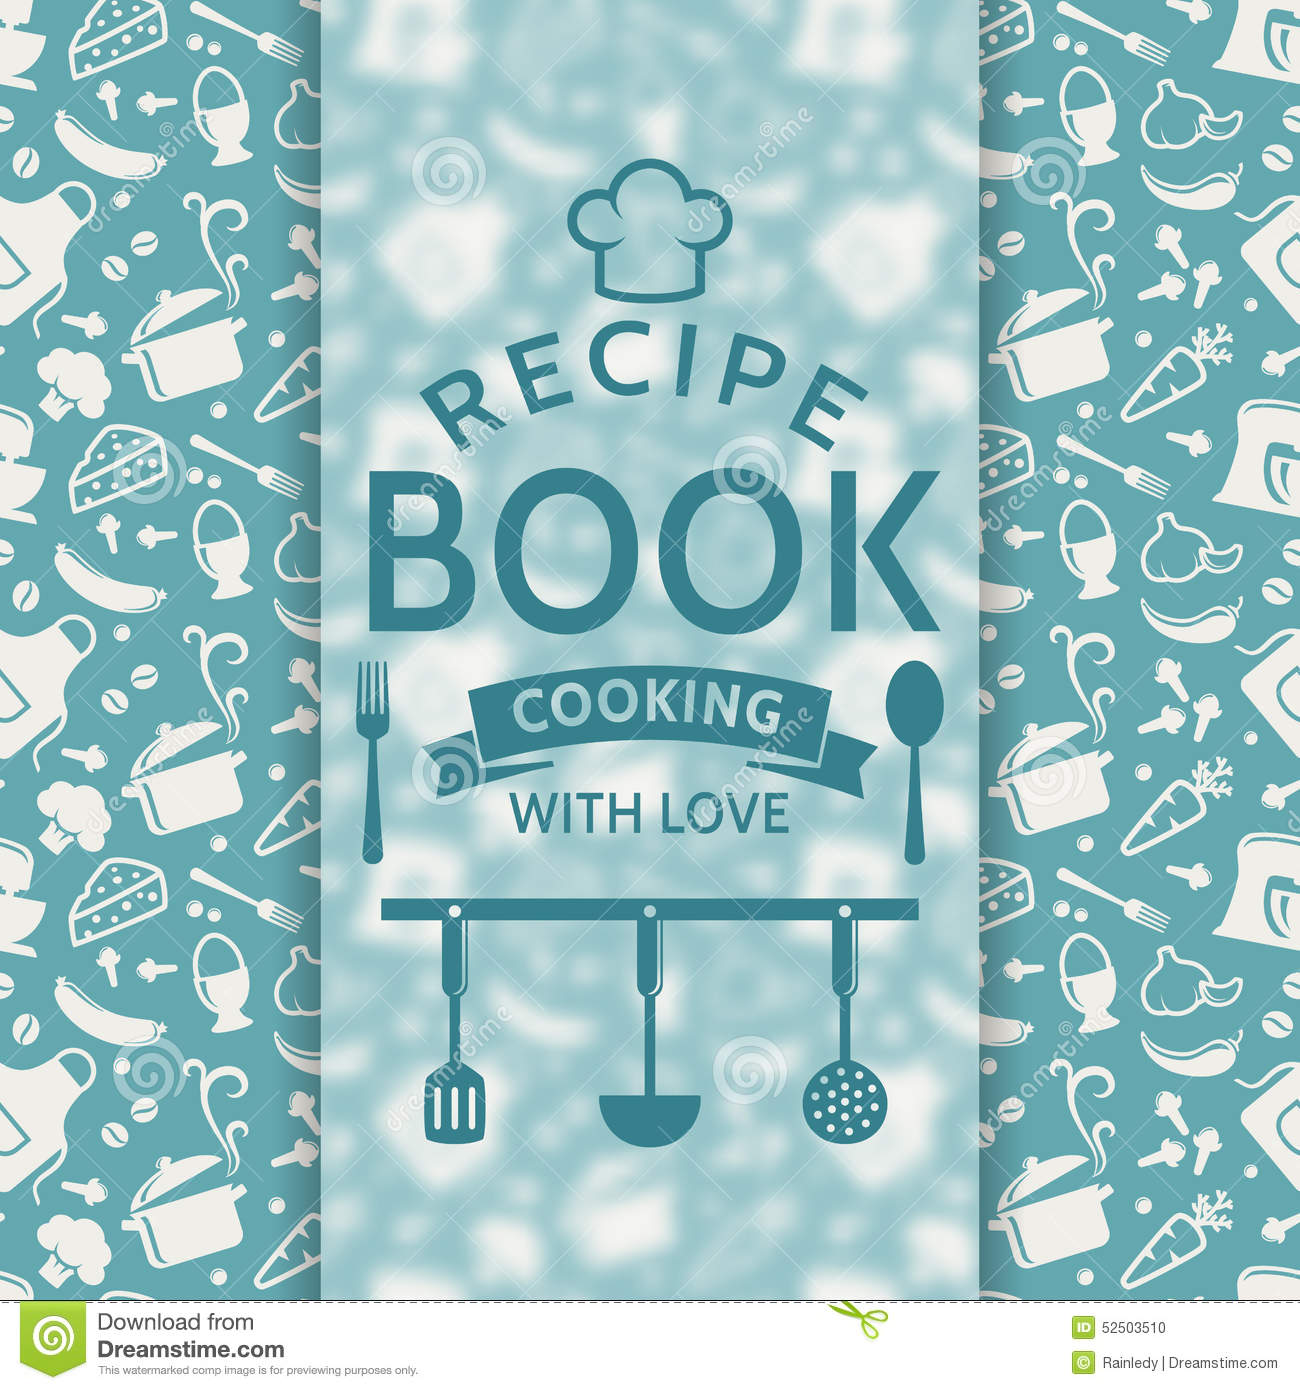 Book Cover Design Silhouette : Recipe book vector card stock image